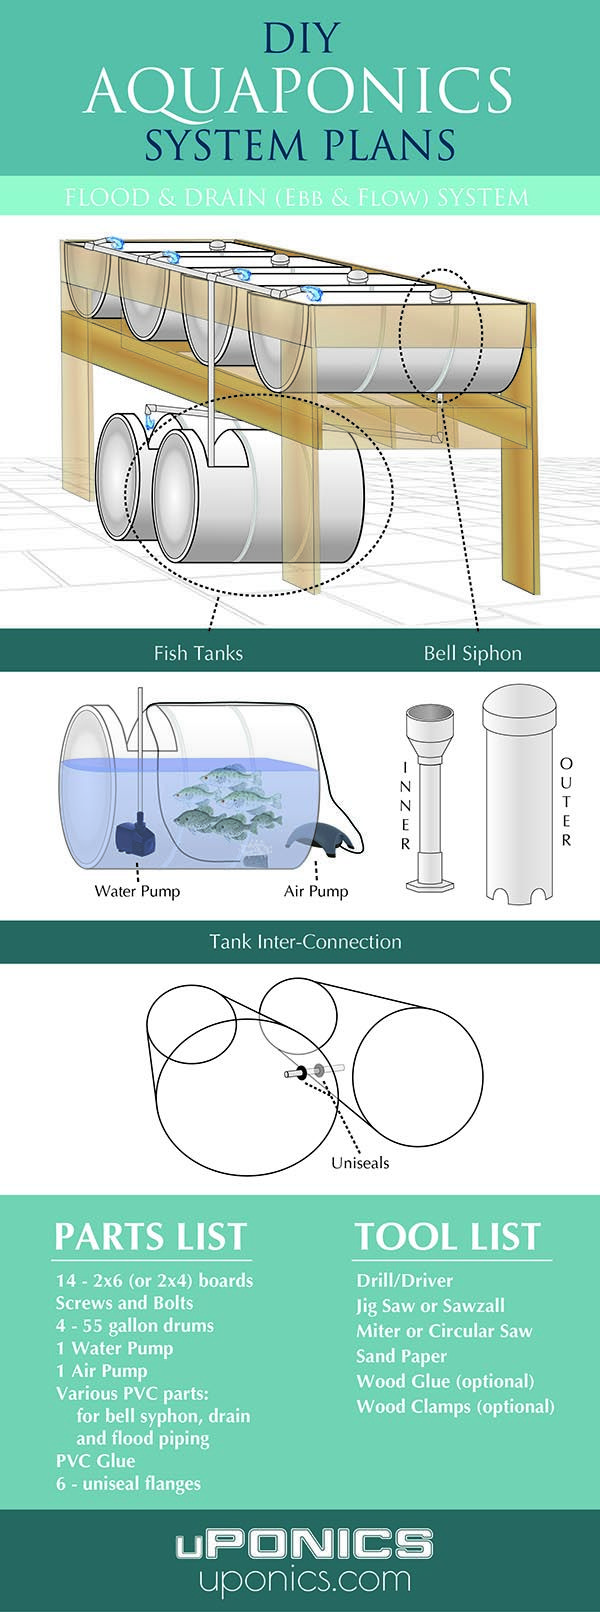 Really nice set of aquaponics plans!